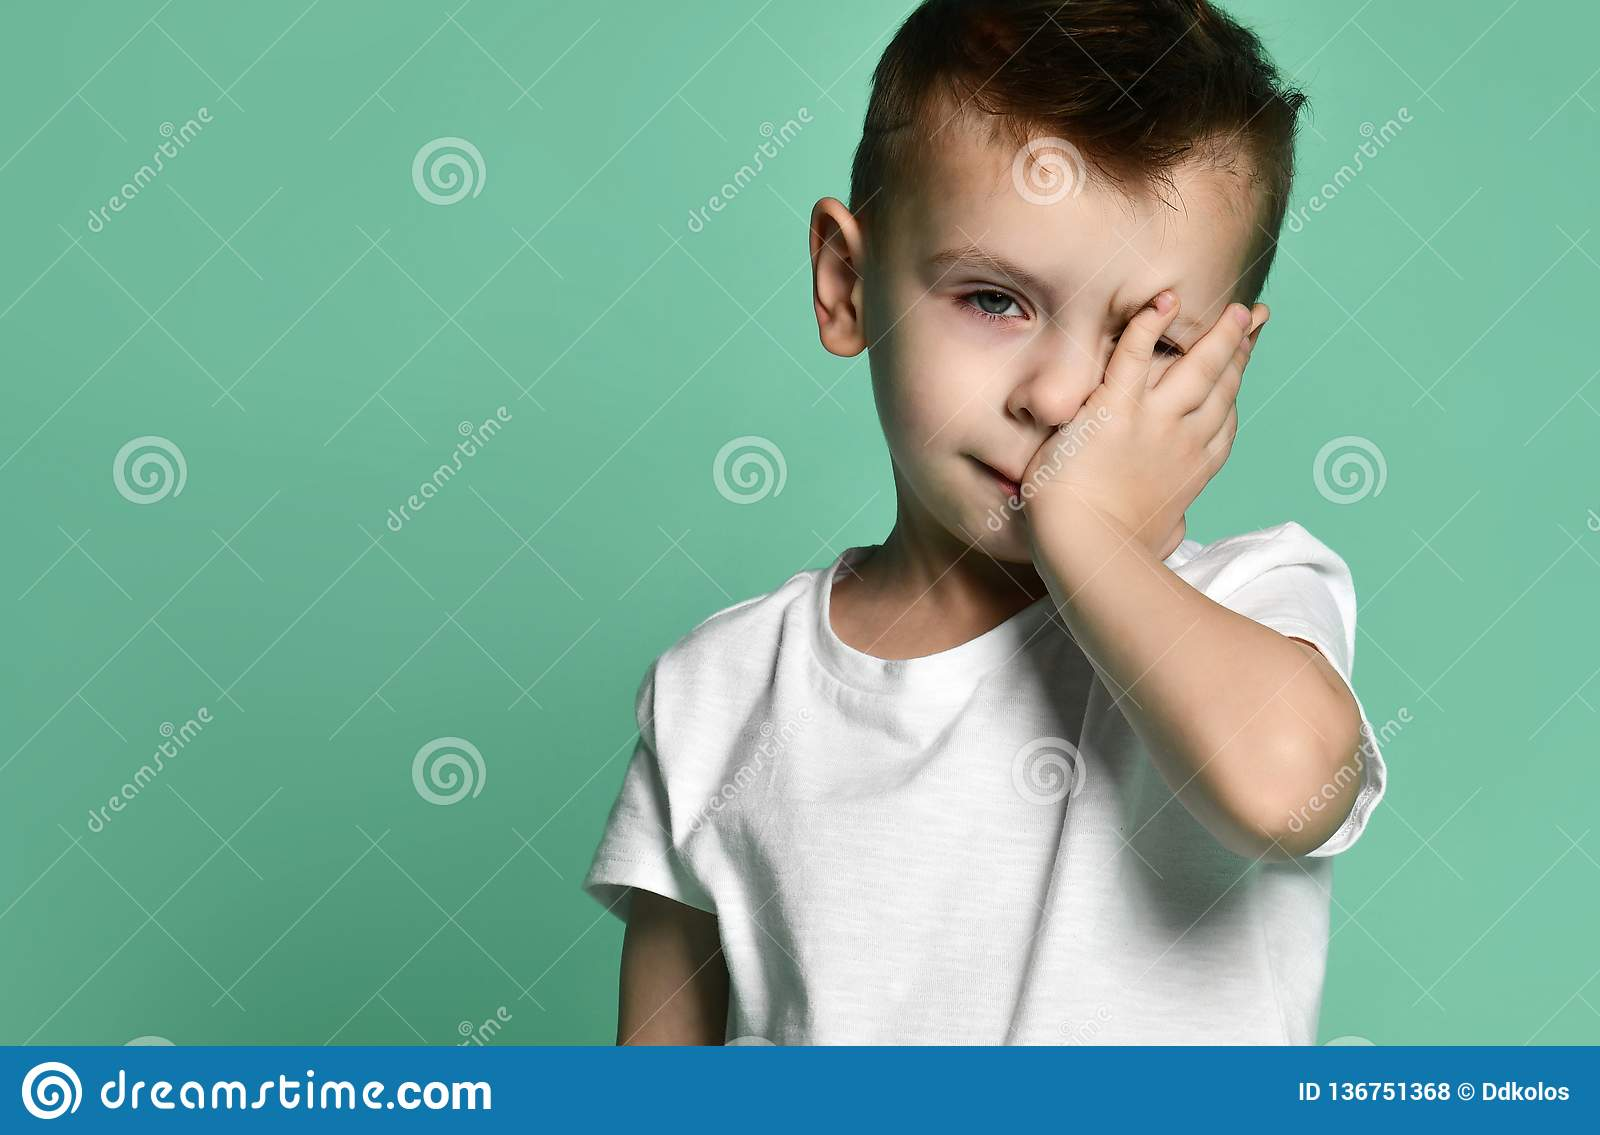 Portrait of unhappy sad bored kid boy leaning head on palm looking with upset